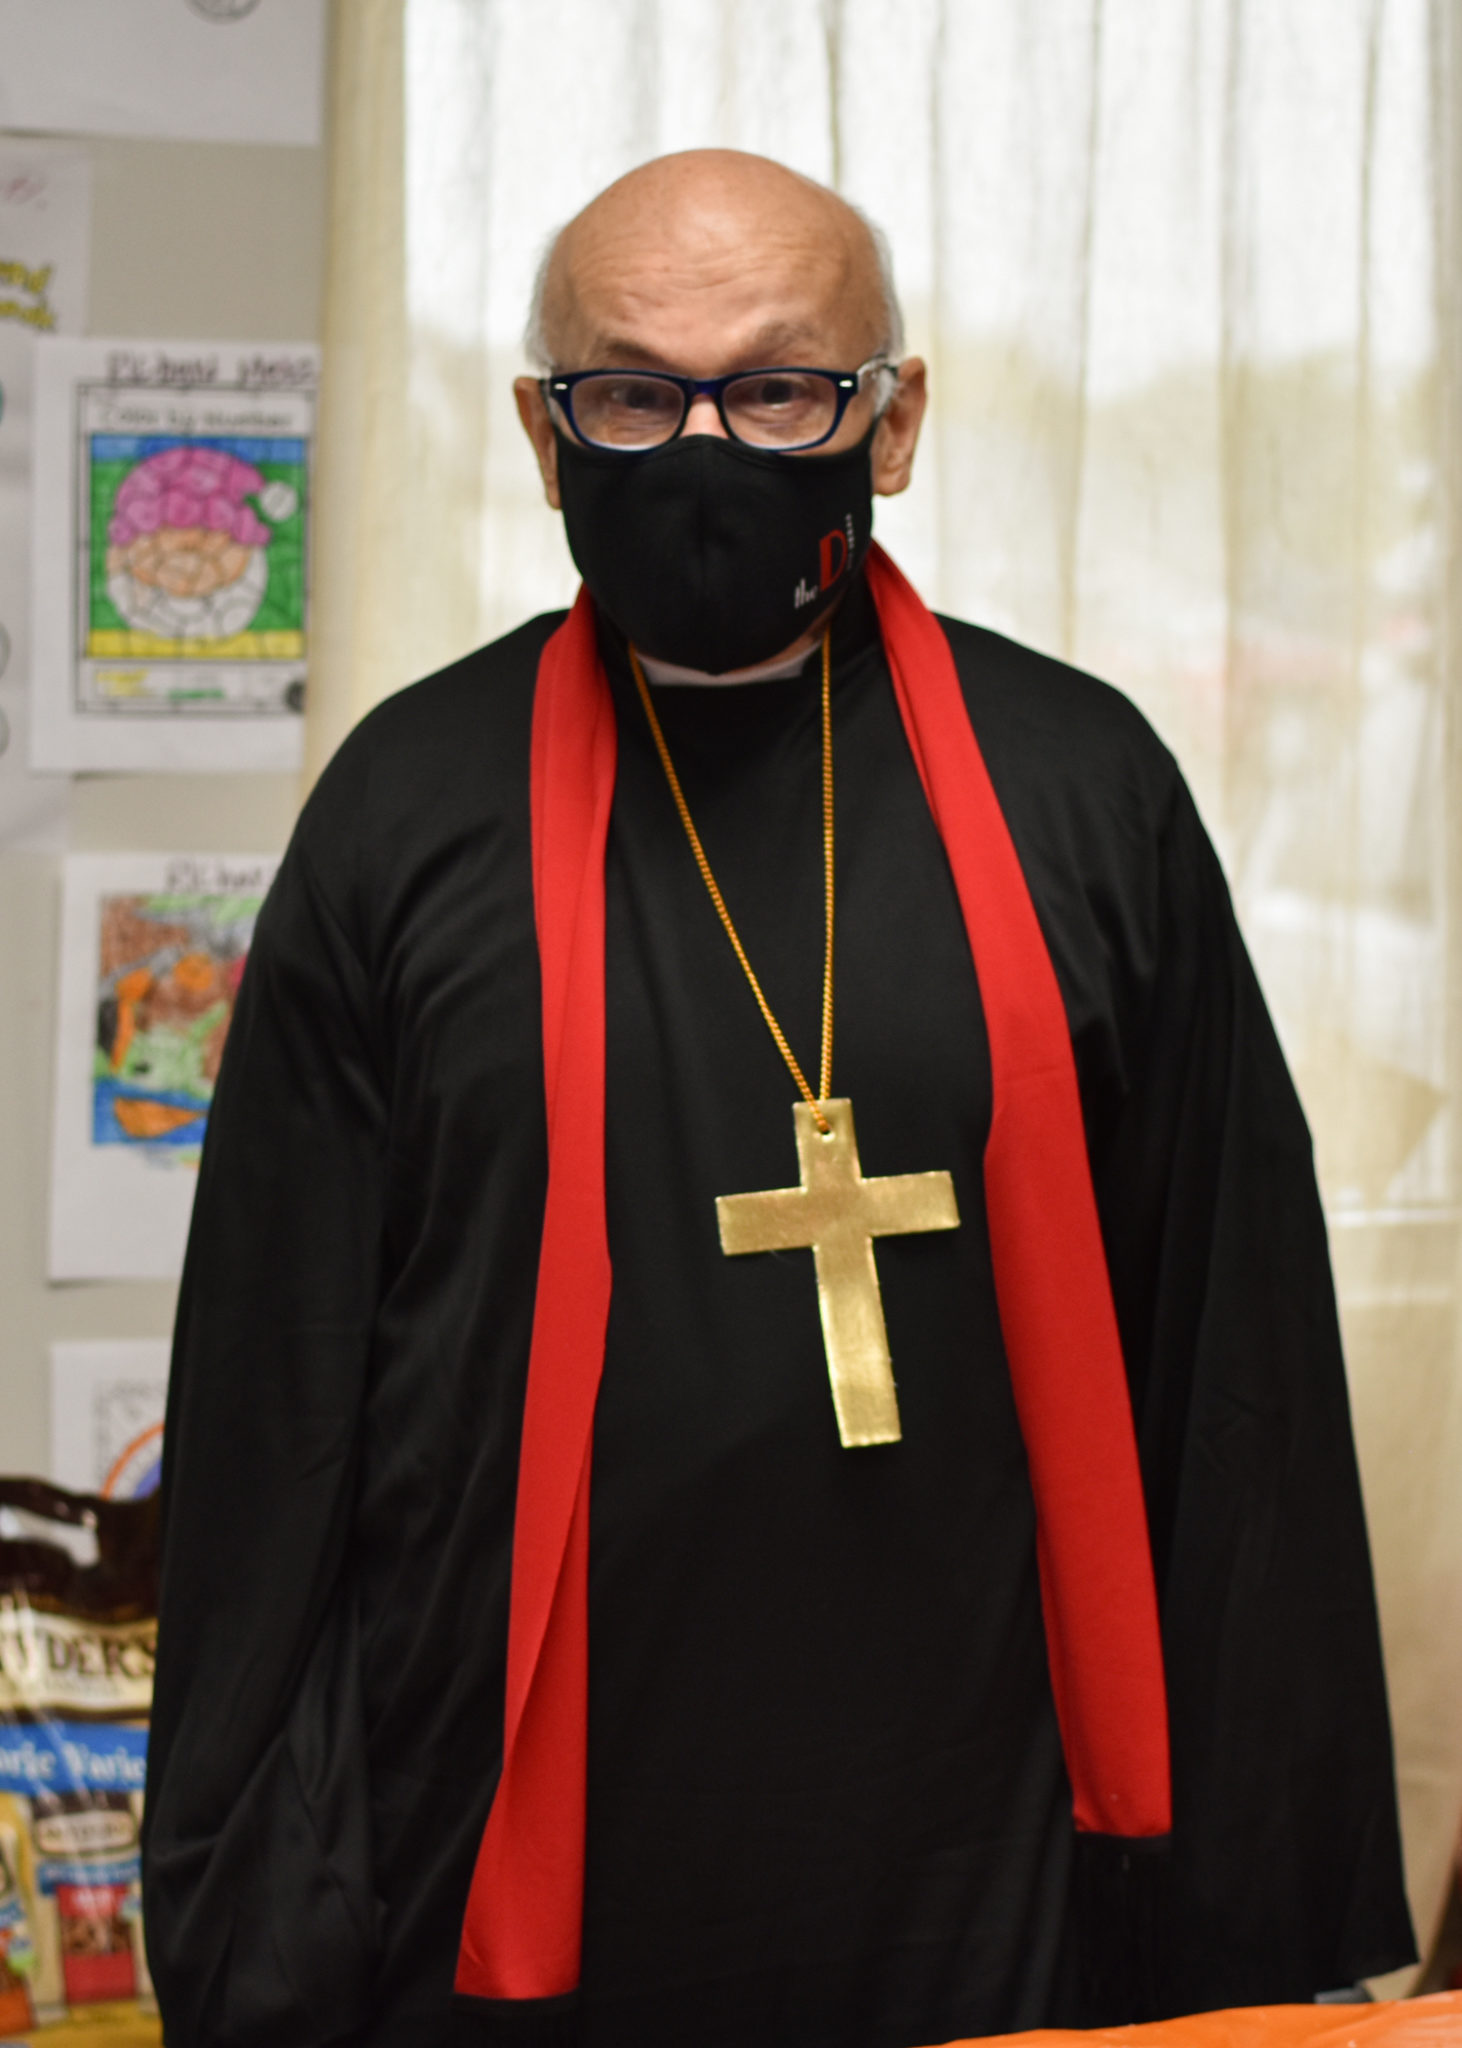 A man we support is dressed like a priest for Halloween